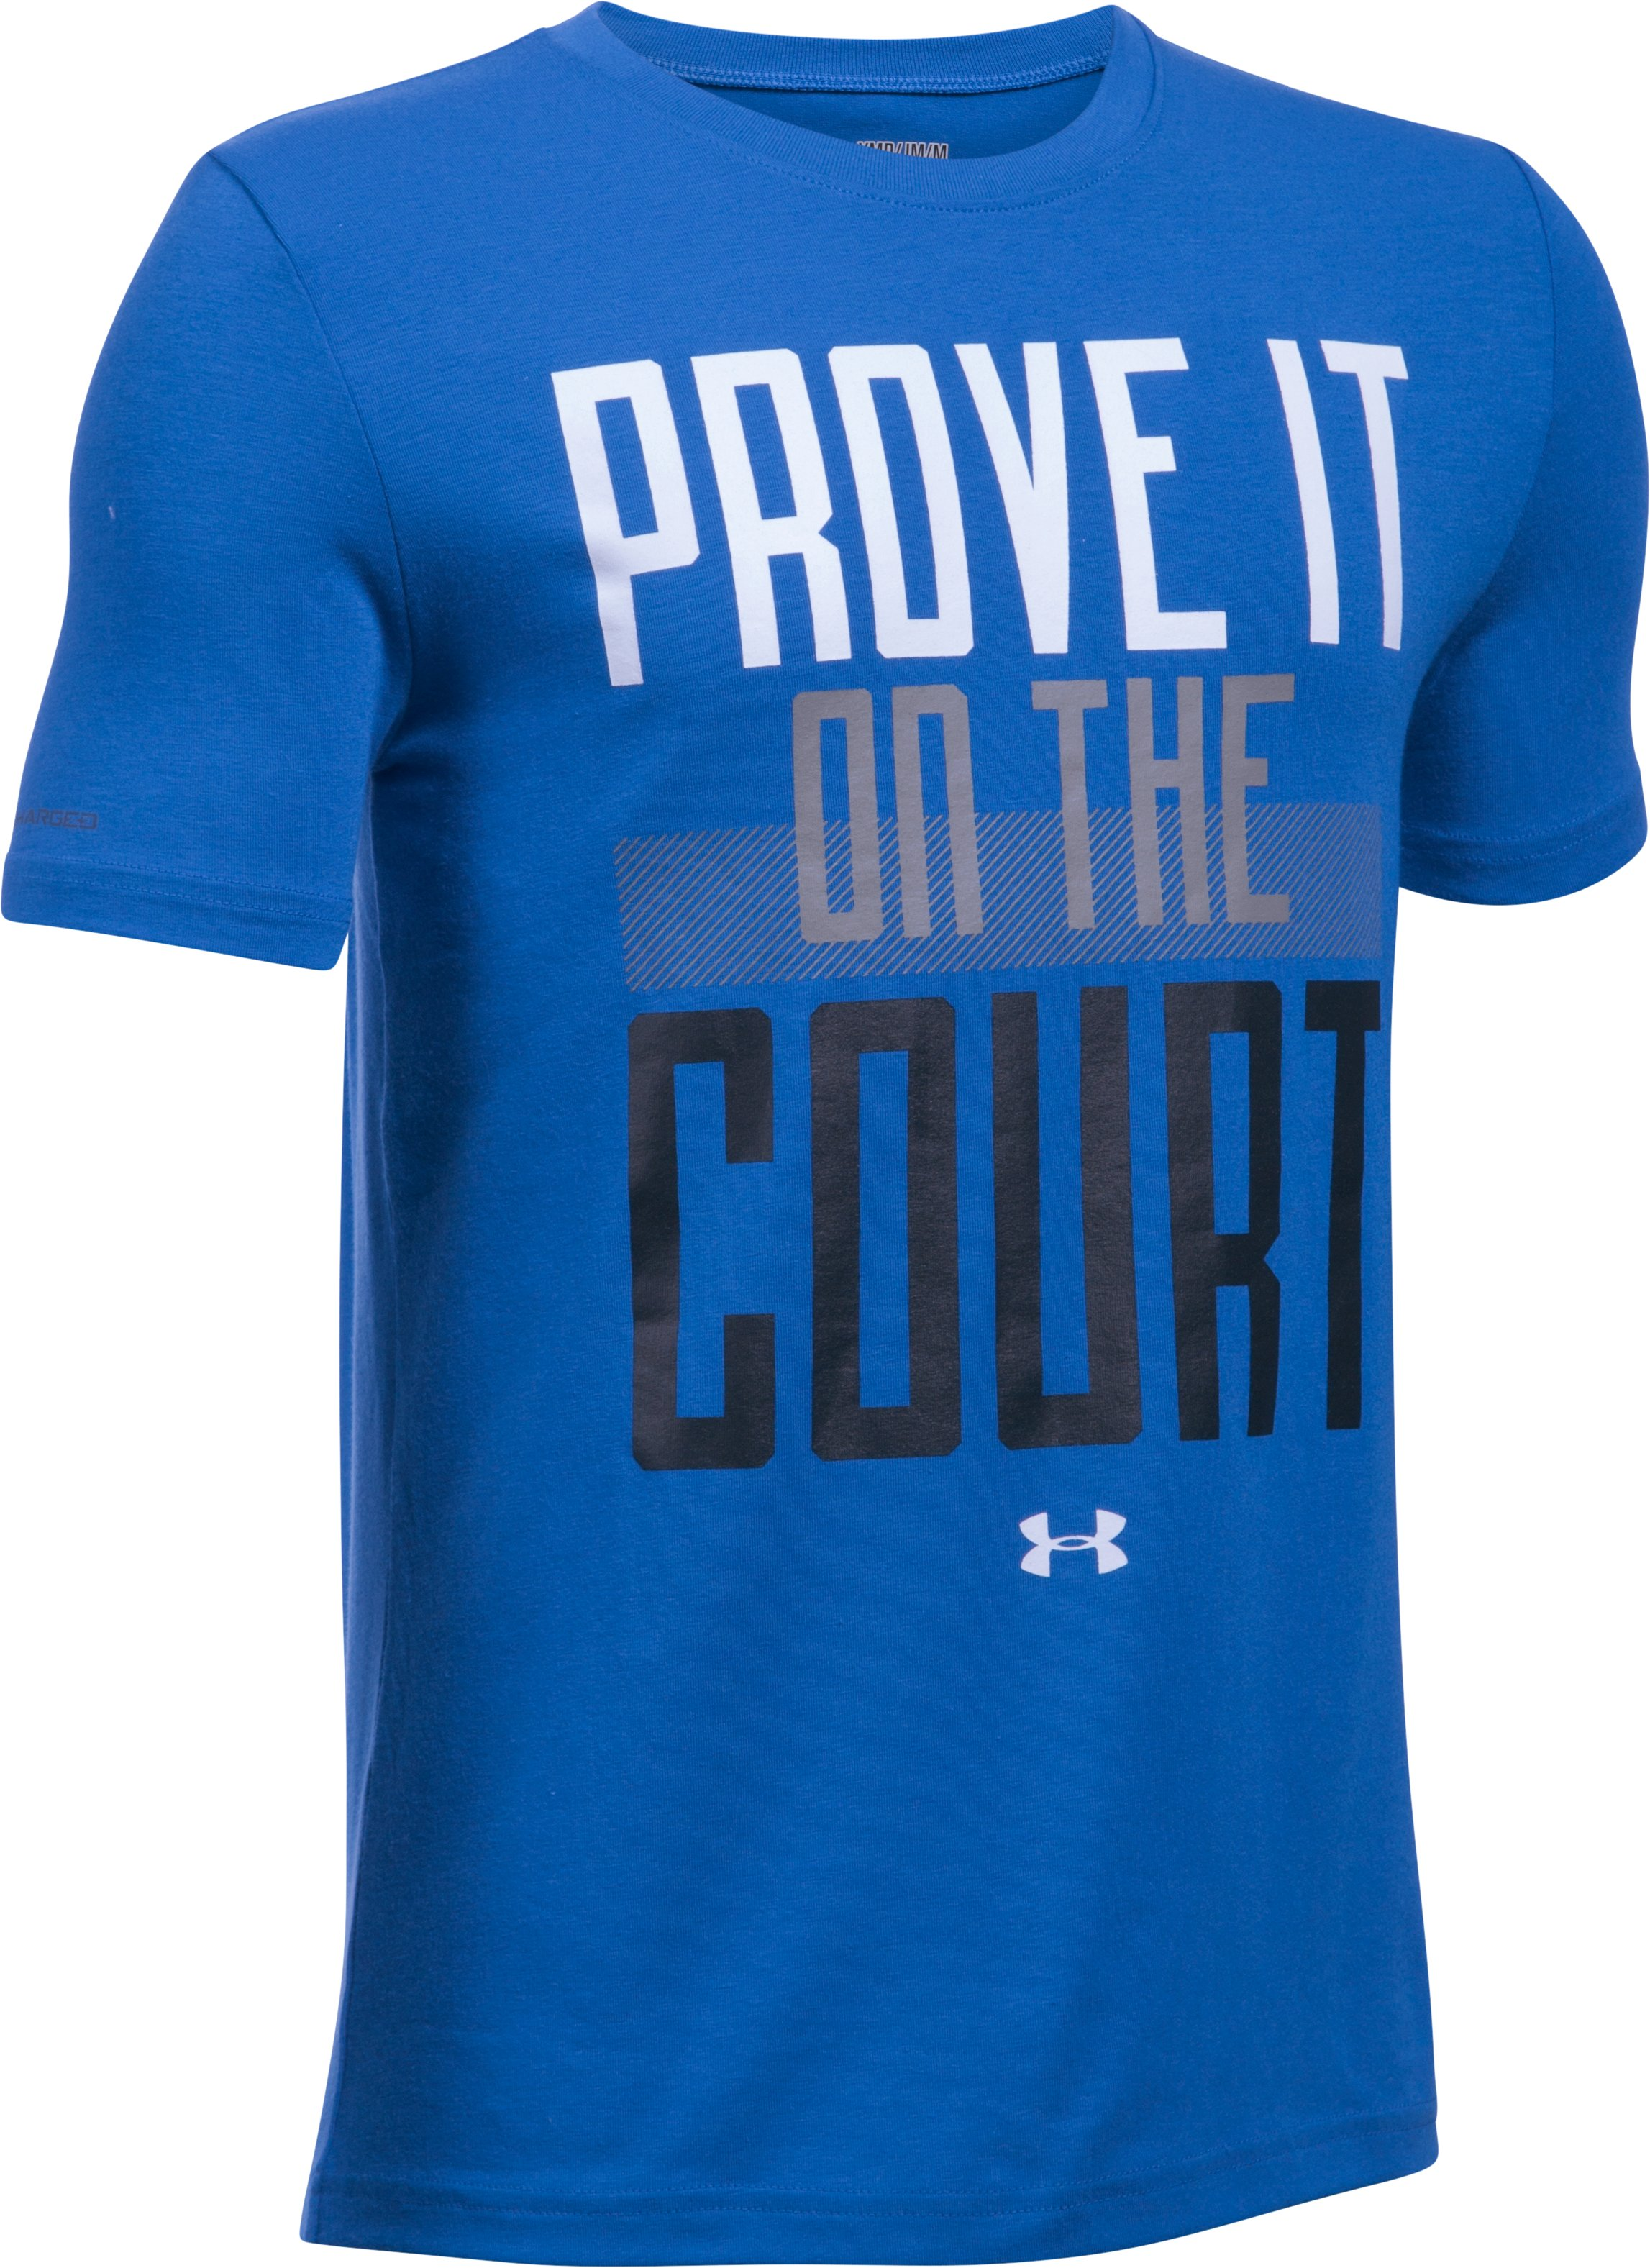 Boys' UA Prove It On The Court Short Sleeve T-Shirt, ULTRA BLUE